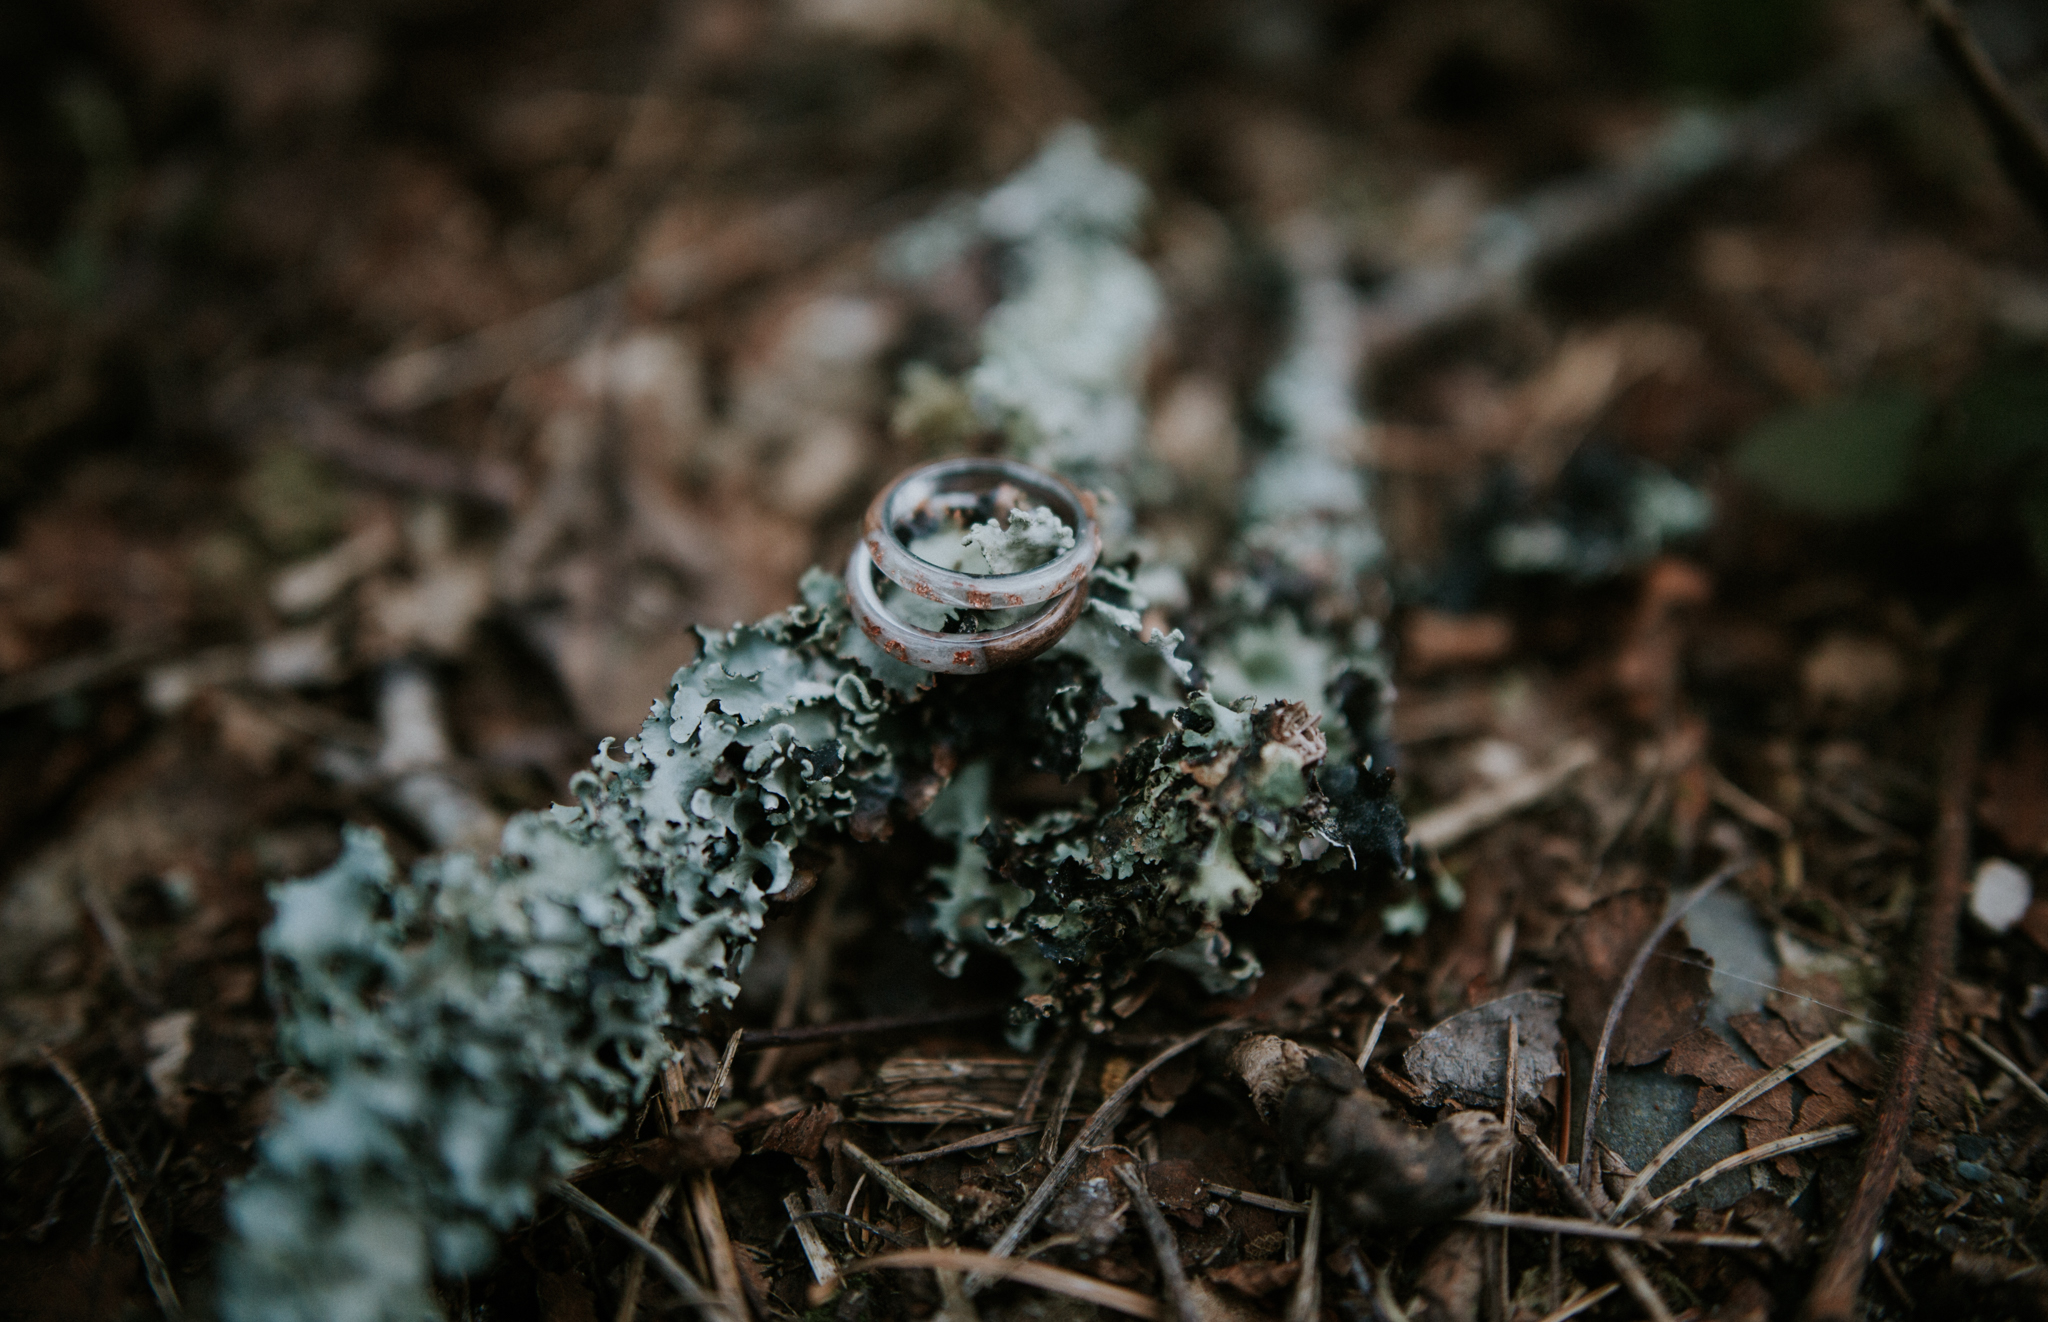 The alternative wedding rings on the ground of Inish Beg Estate in Ireland